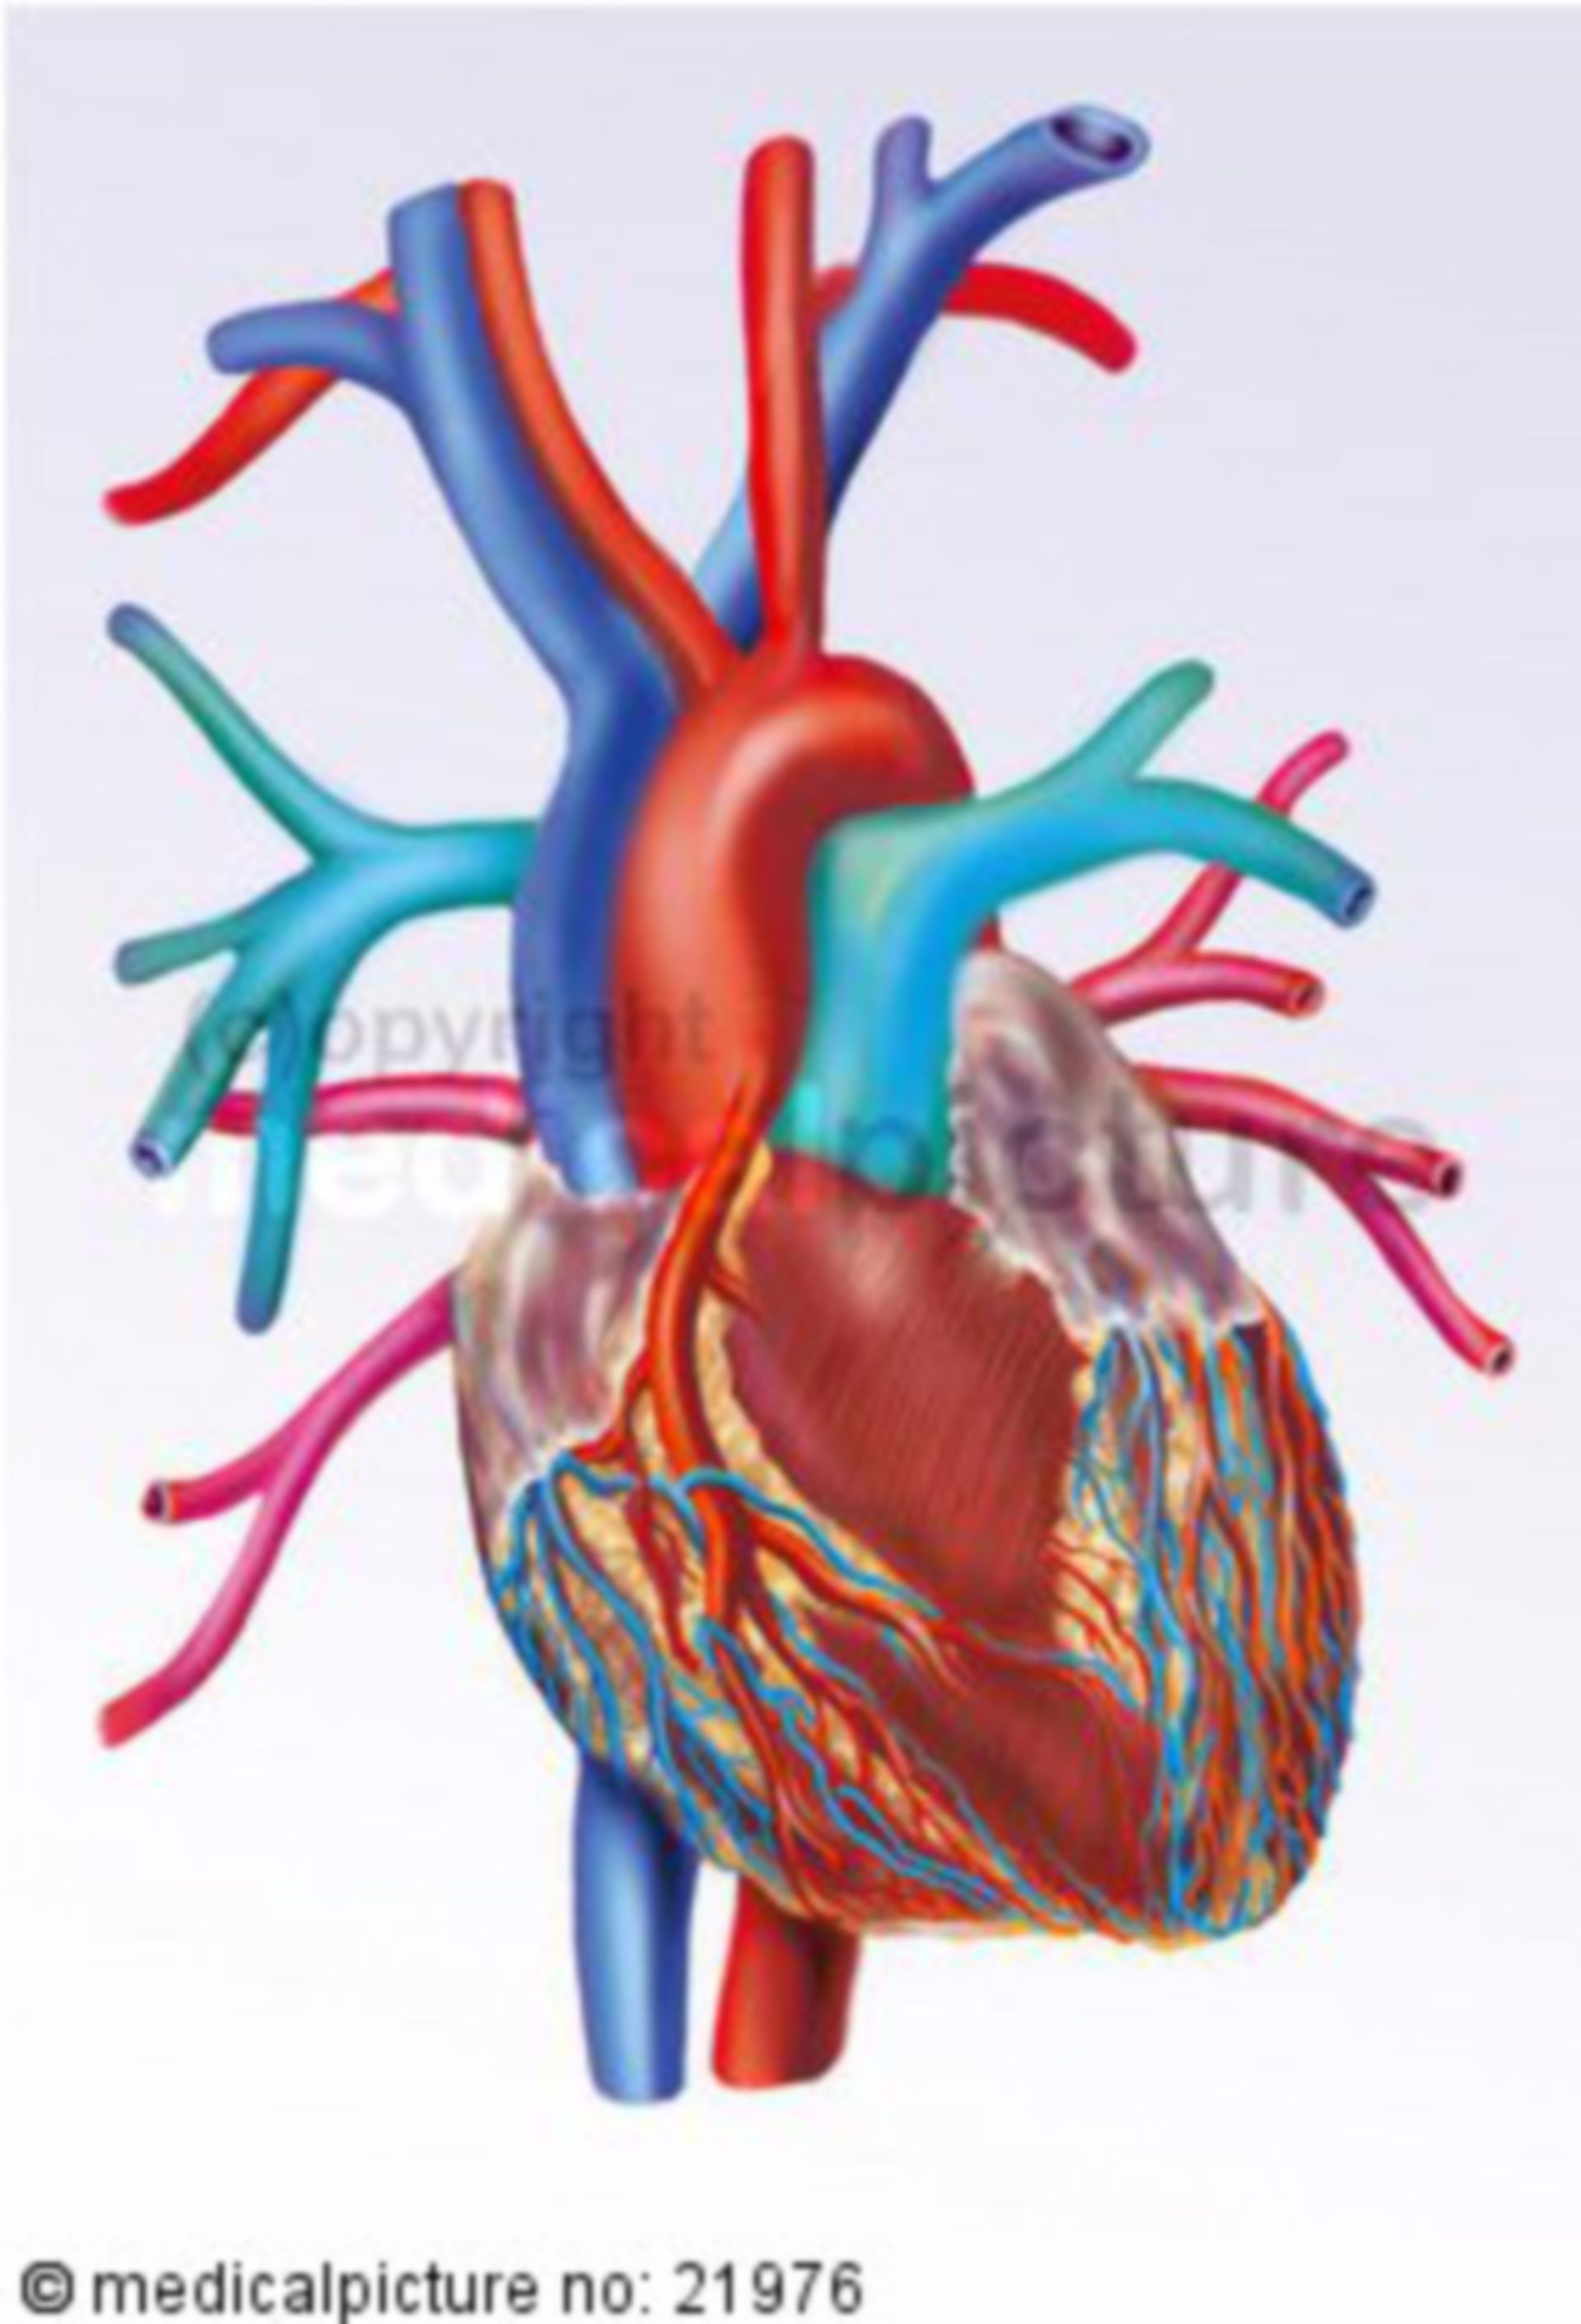 Heart with inflow, ejection, and coronary vessels